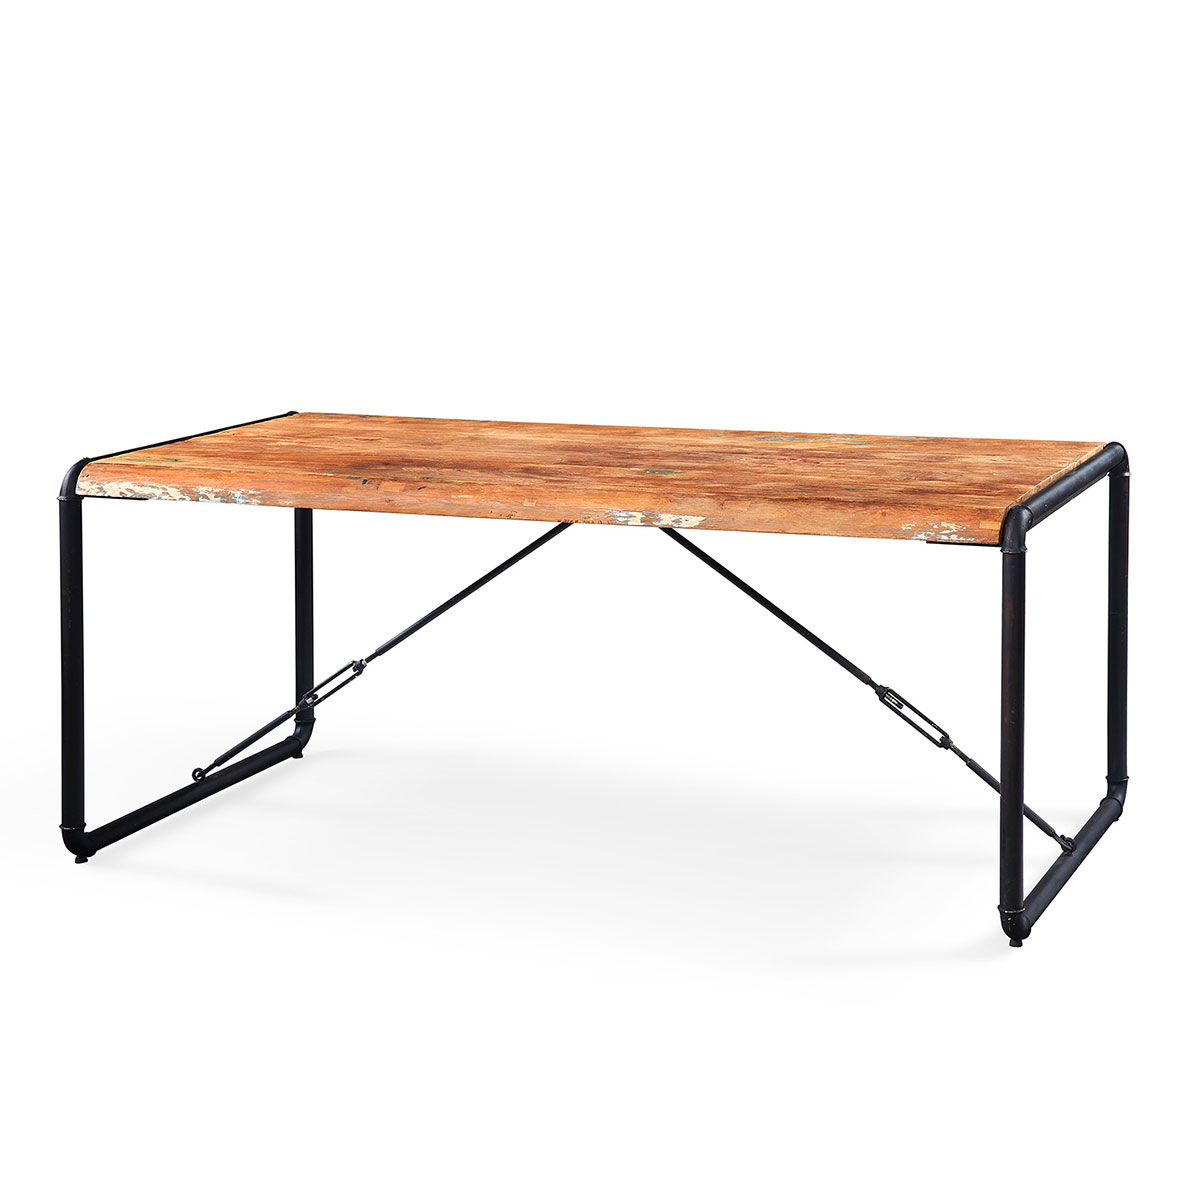 table manger en teck massif recycl lombock. Black Bedroom Furniture Sets. Home Design Ideas